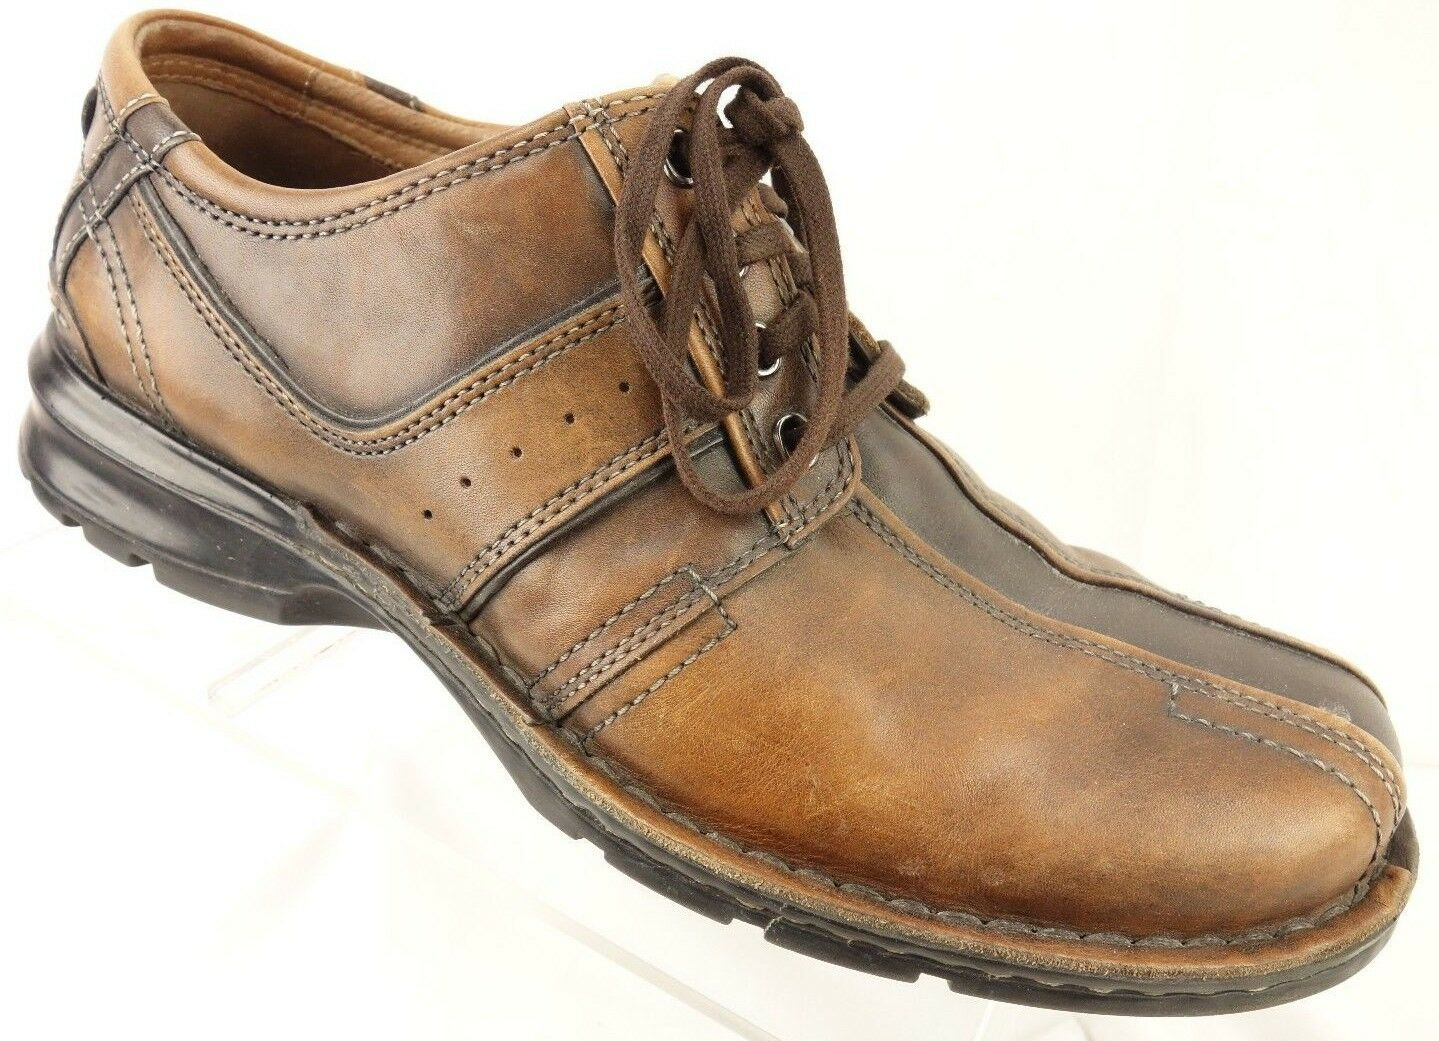 CLARKS Oxford shoes Mens 10.5 M Brown Leather Square Bicycle Toe Casual